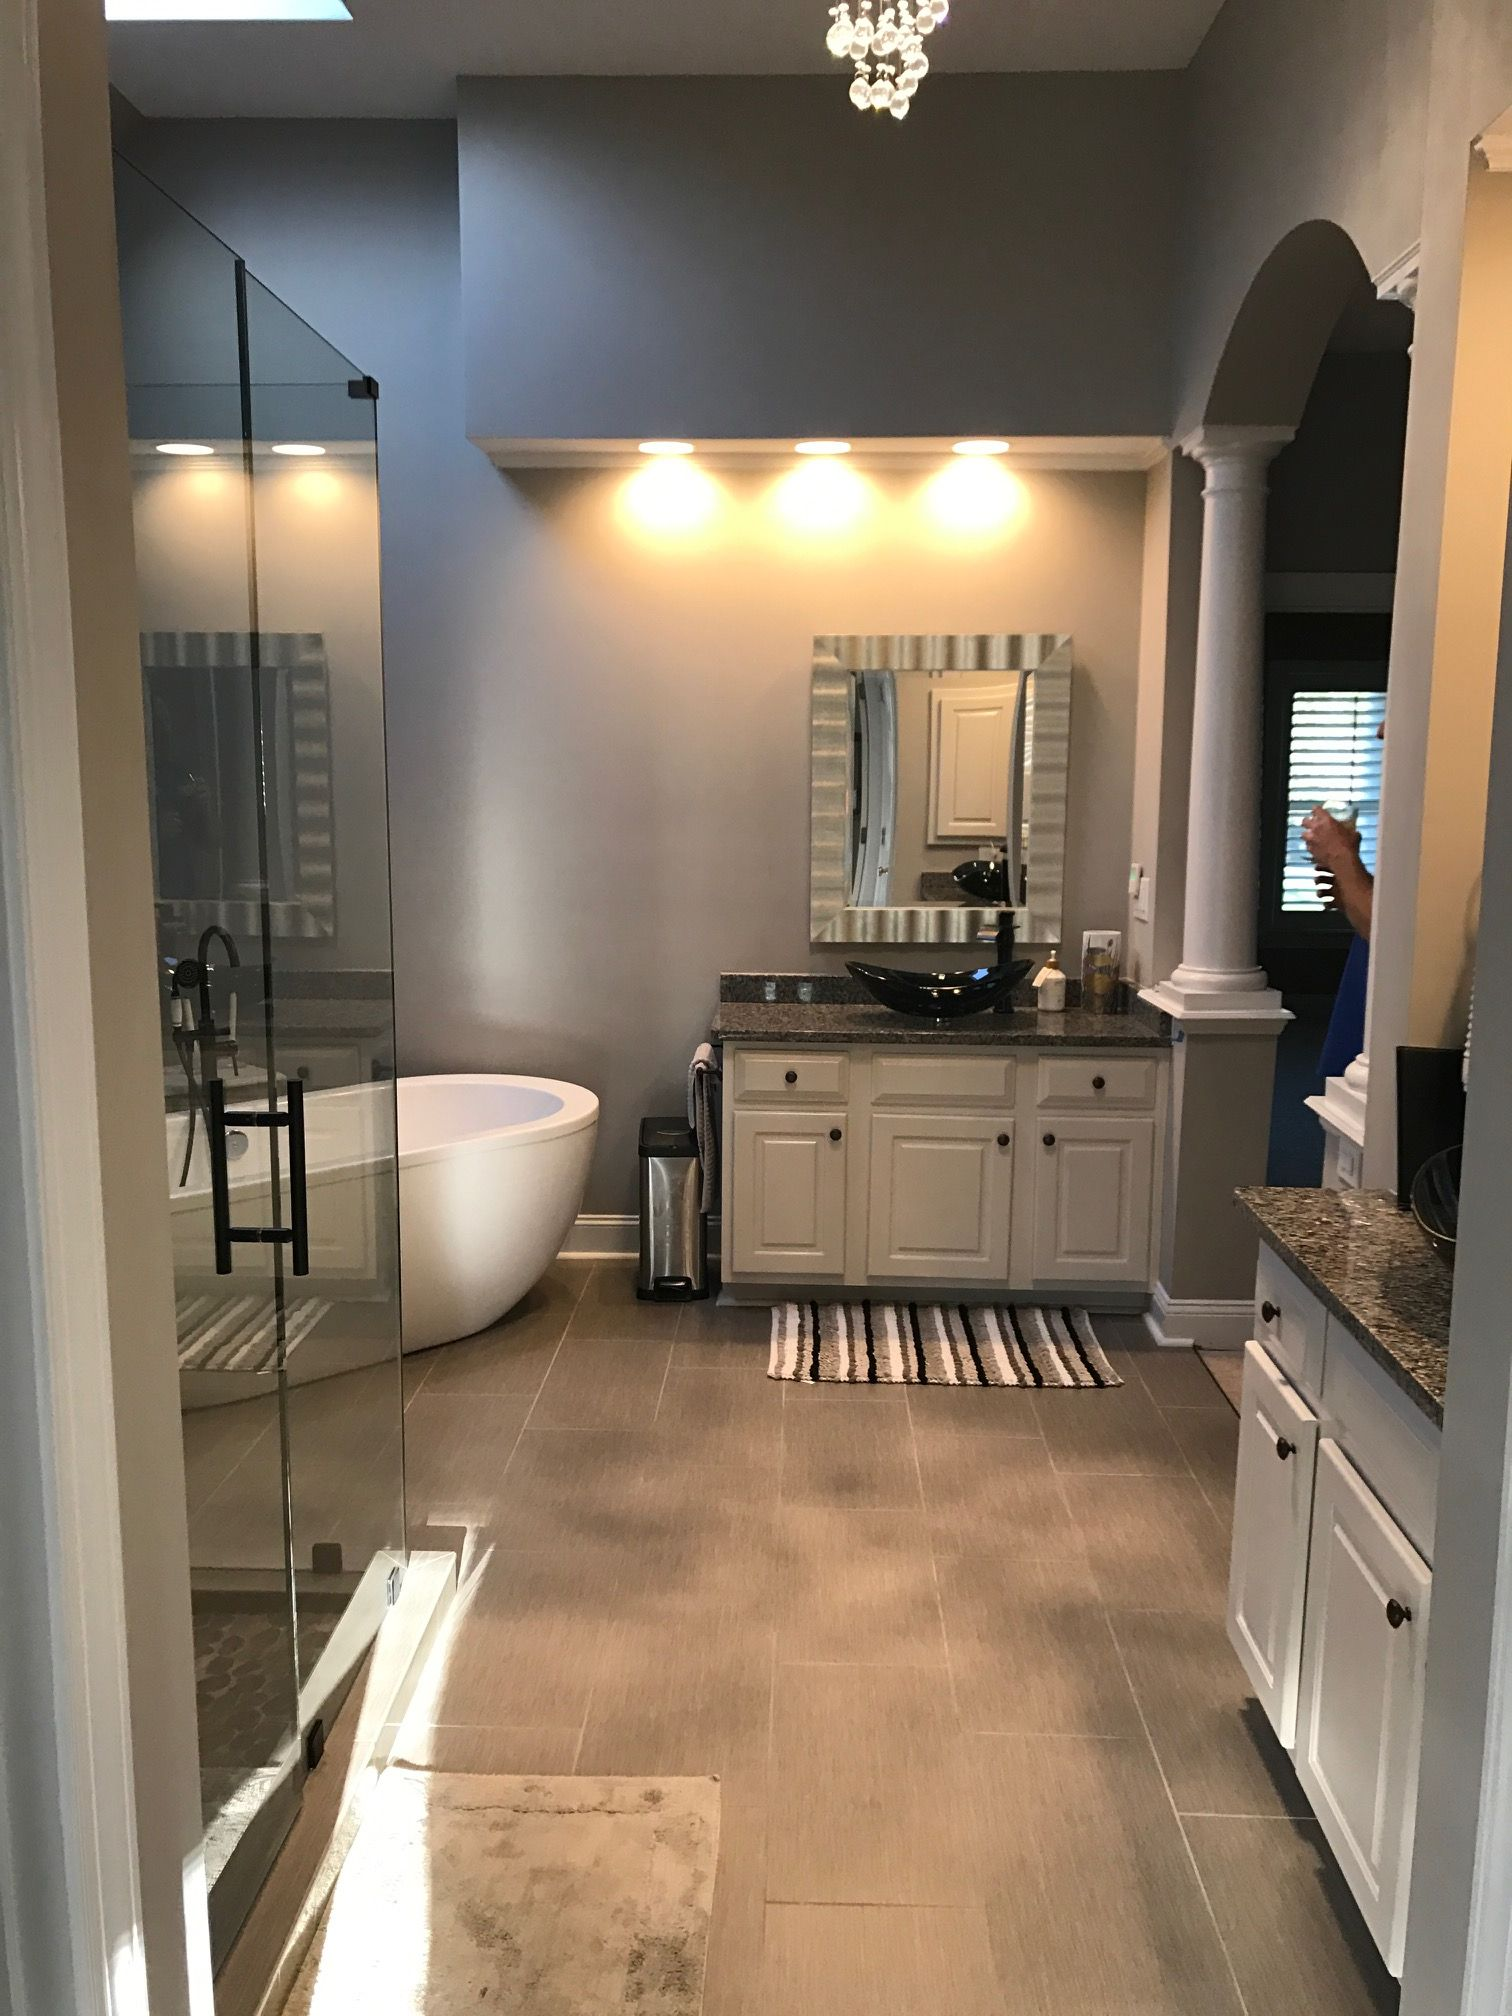 Value Remodelers Of Charlotte Gutted This John Wieland Bathroom And - Charlotte bathroom remodel